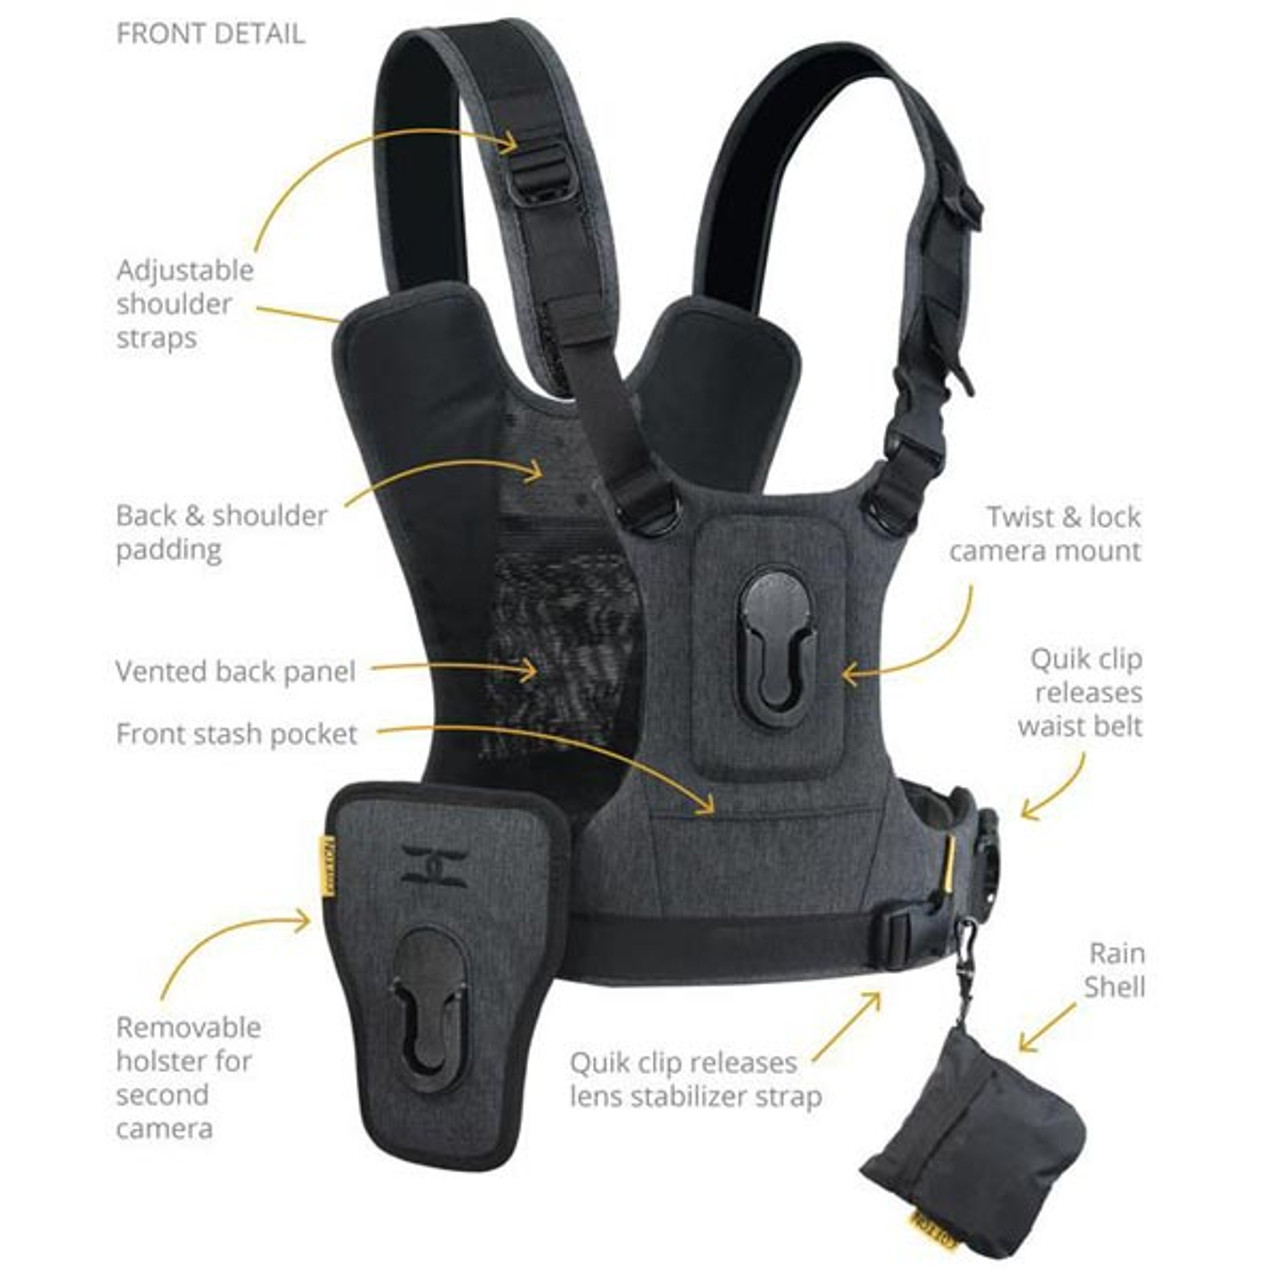 Cotton Carrier G3 Camera Harness 2 Charcoal Grey